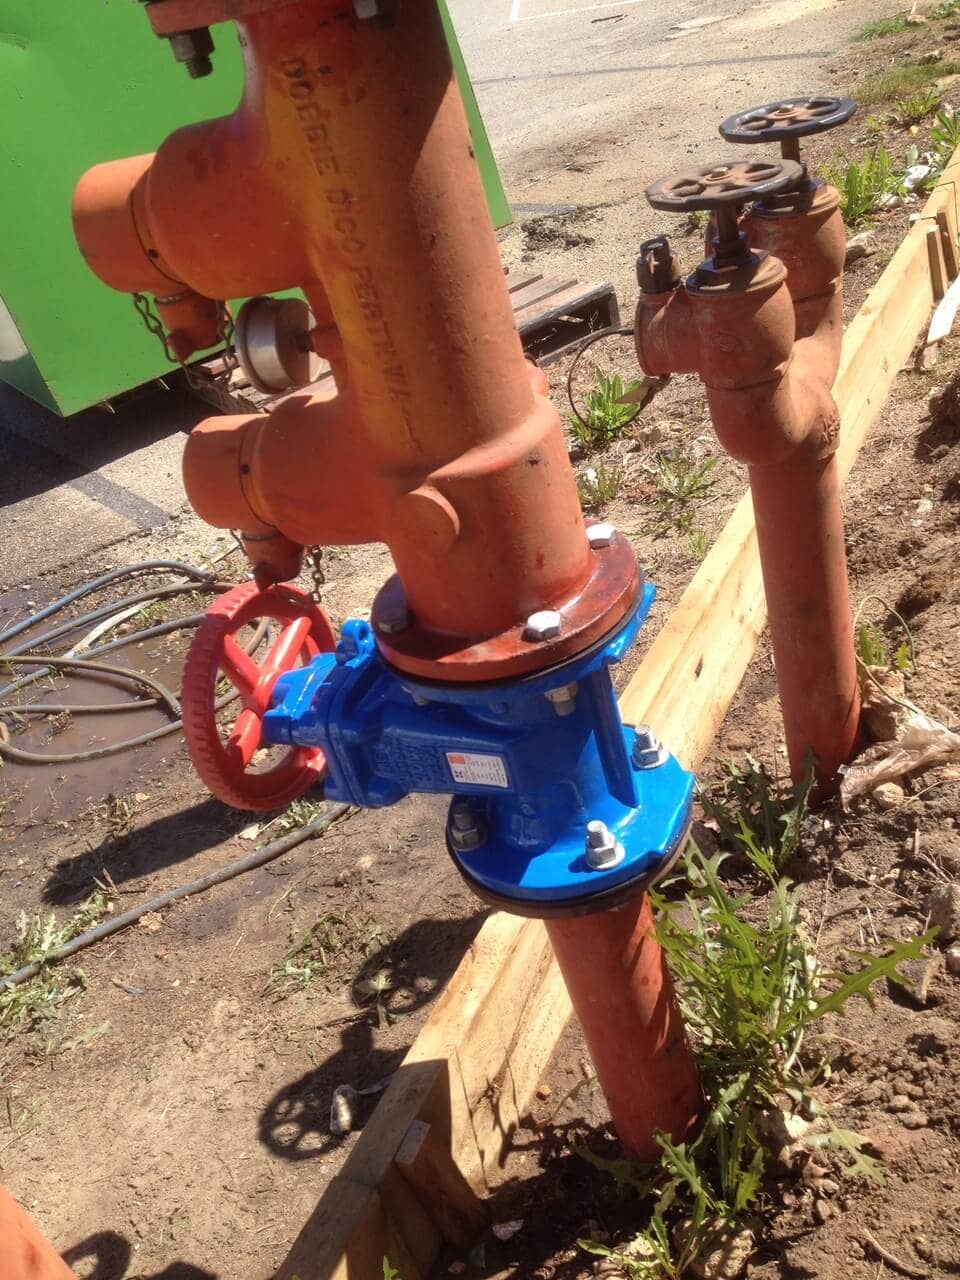 Everyday Plumbers Fire Hydrants Repair and Monitoring Services 2227